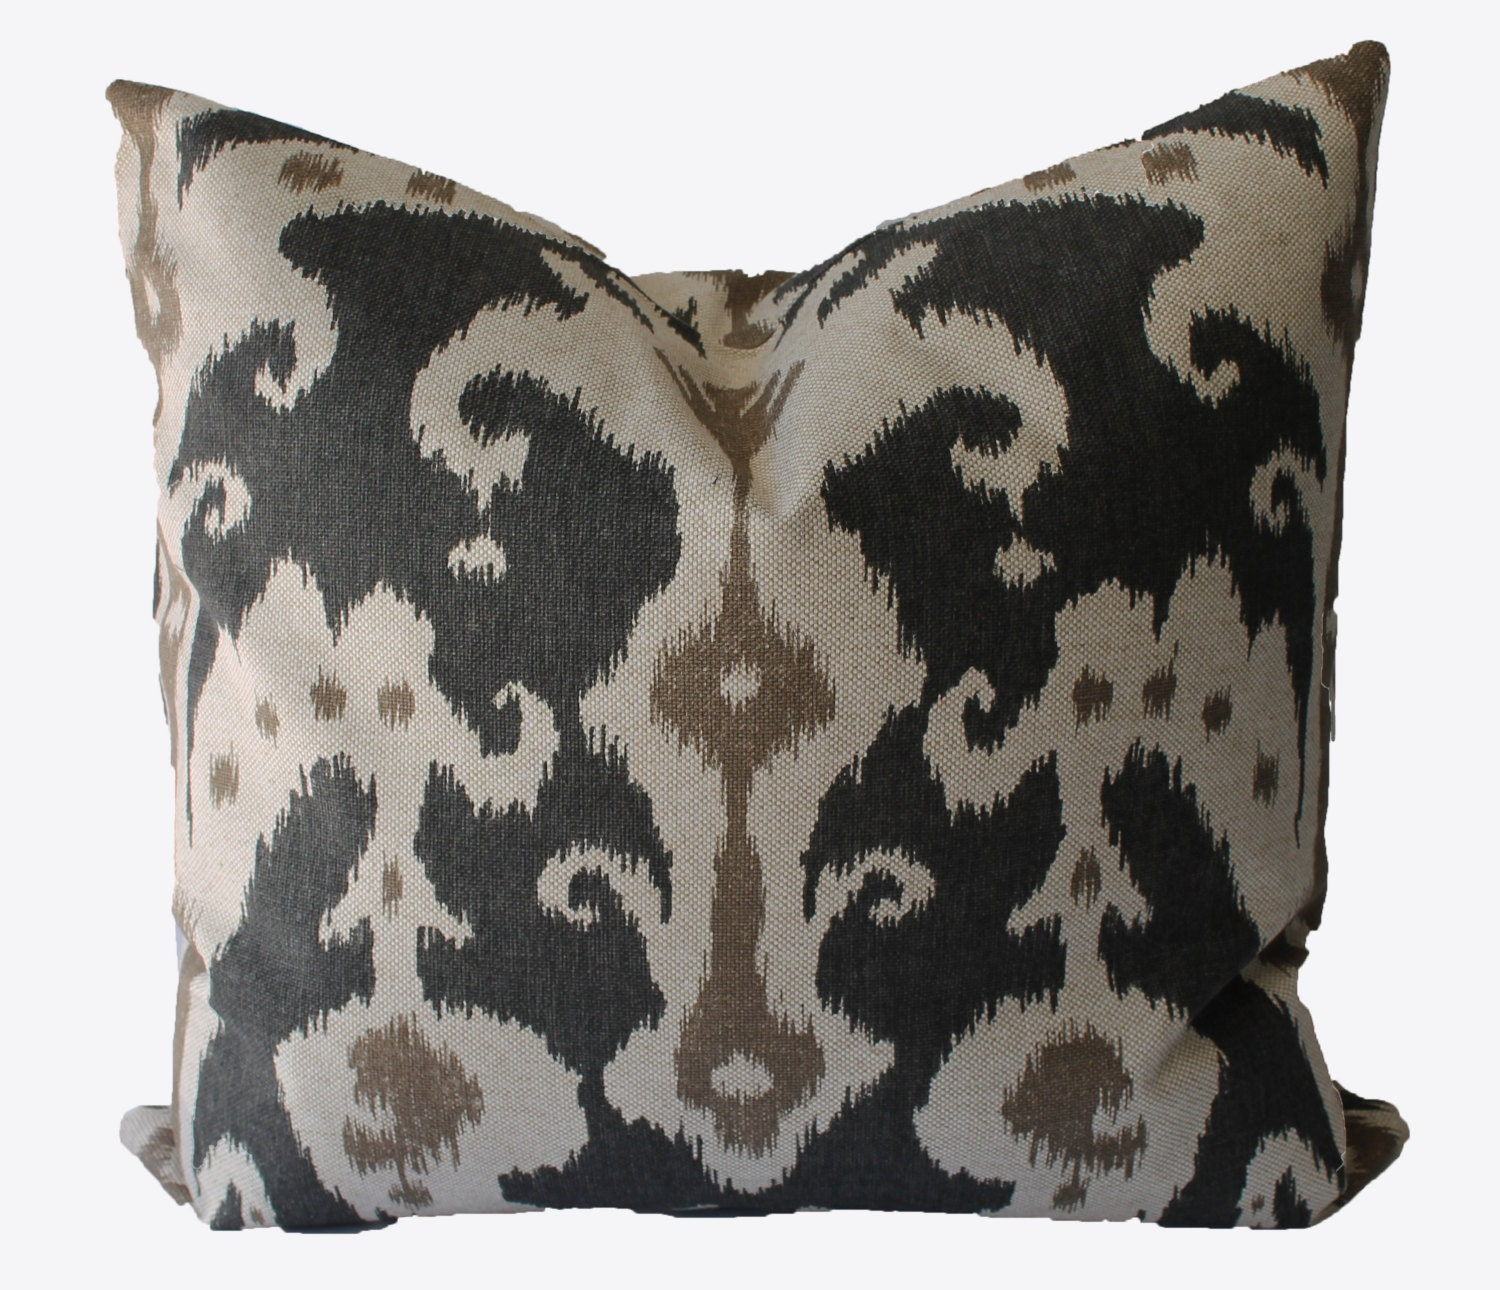 Decorative Ikat Charcoal Grey Beige Tan Marrakesh 19x19